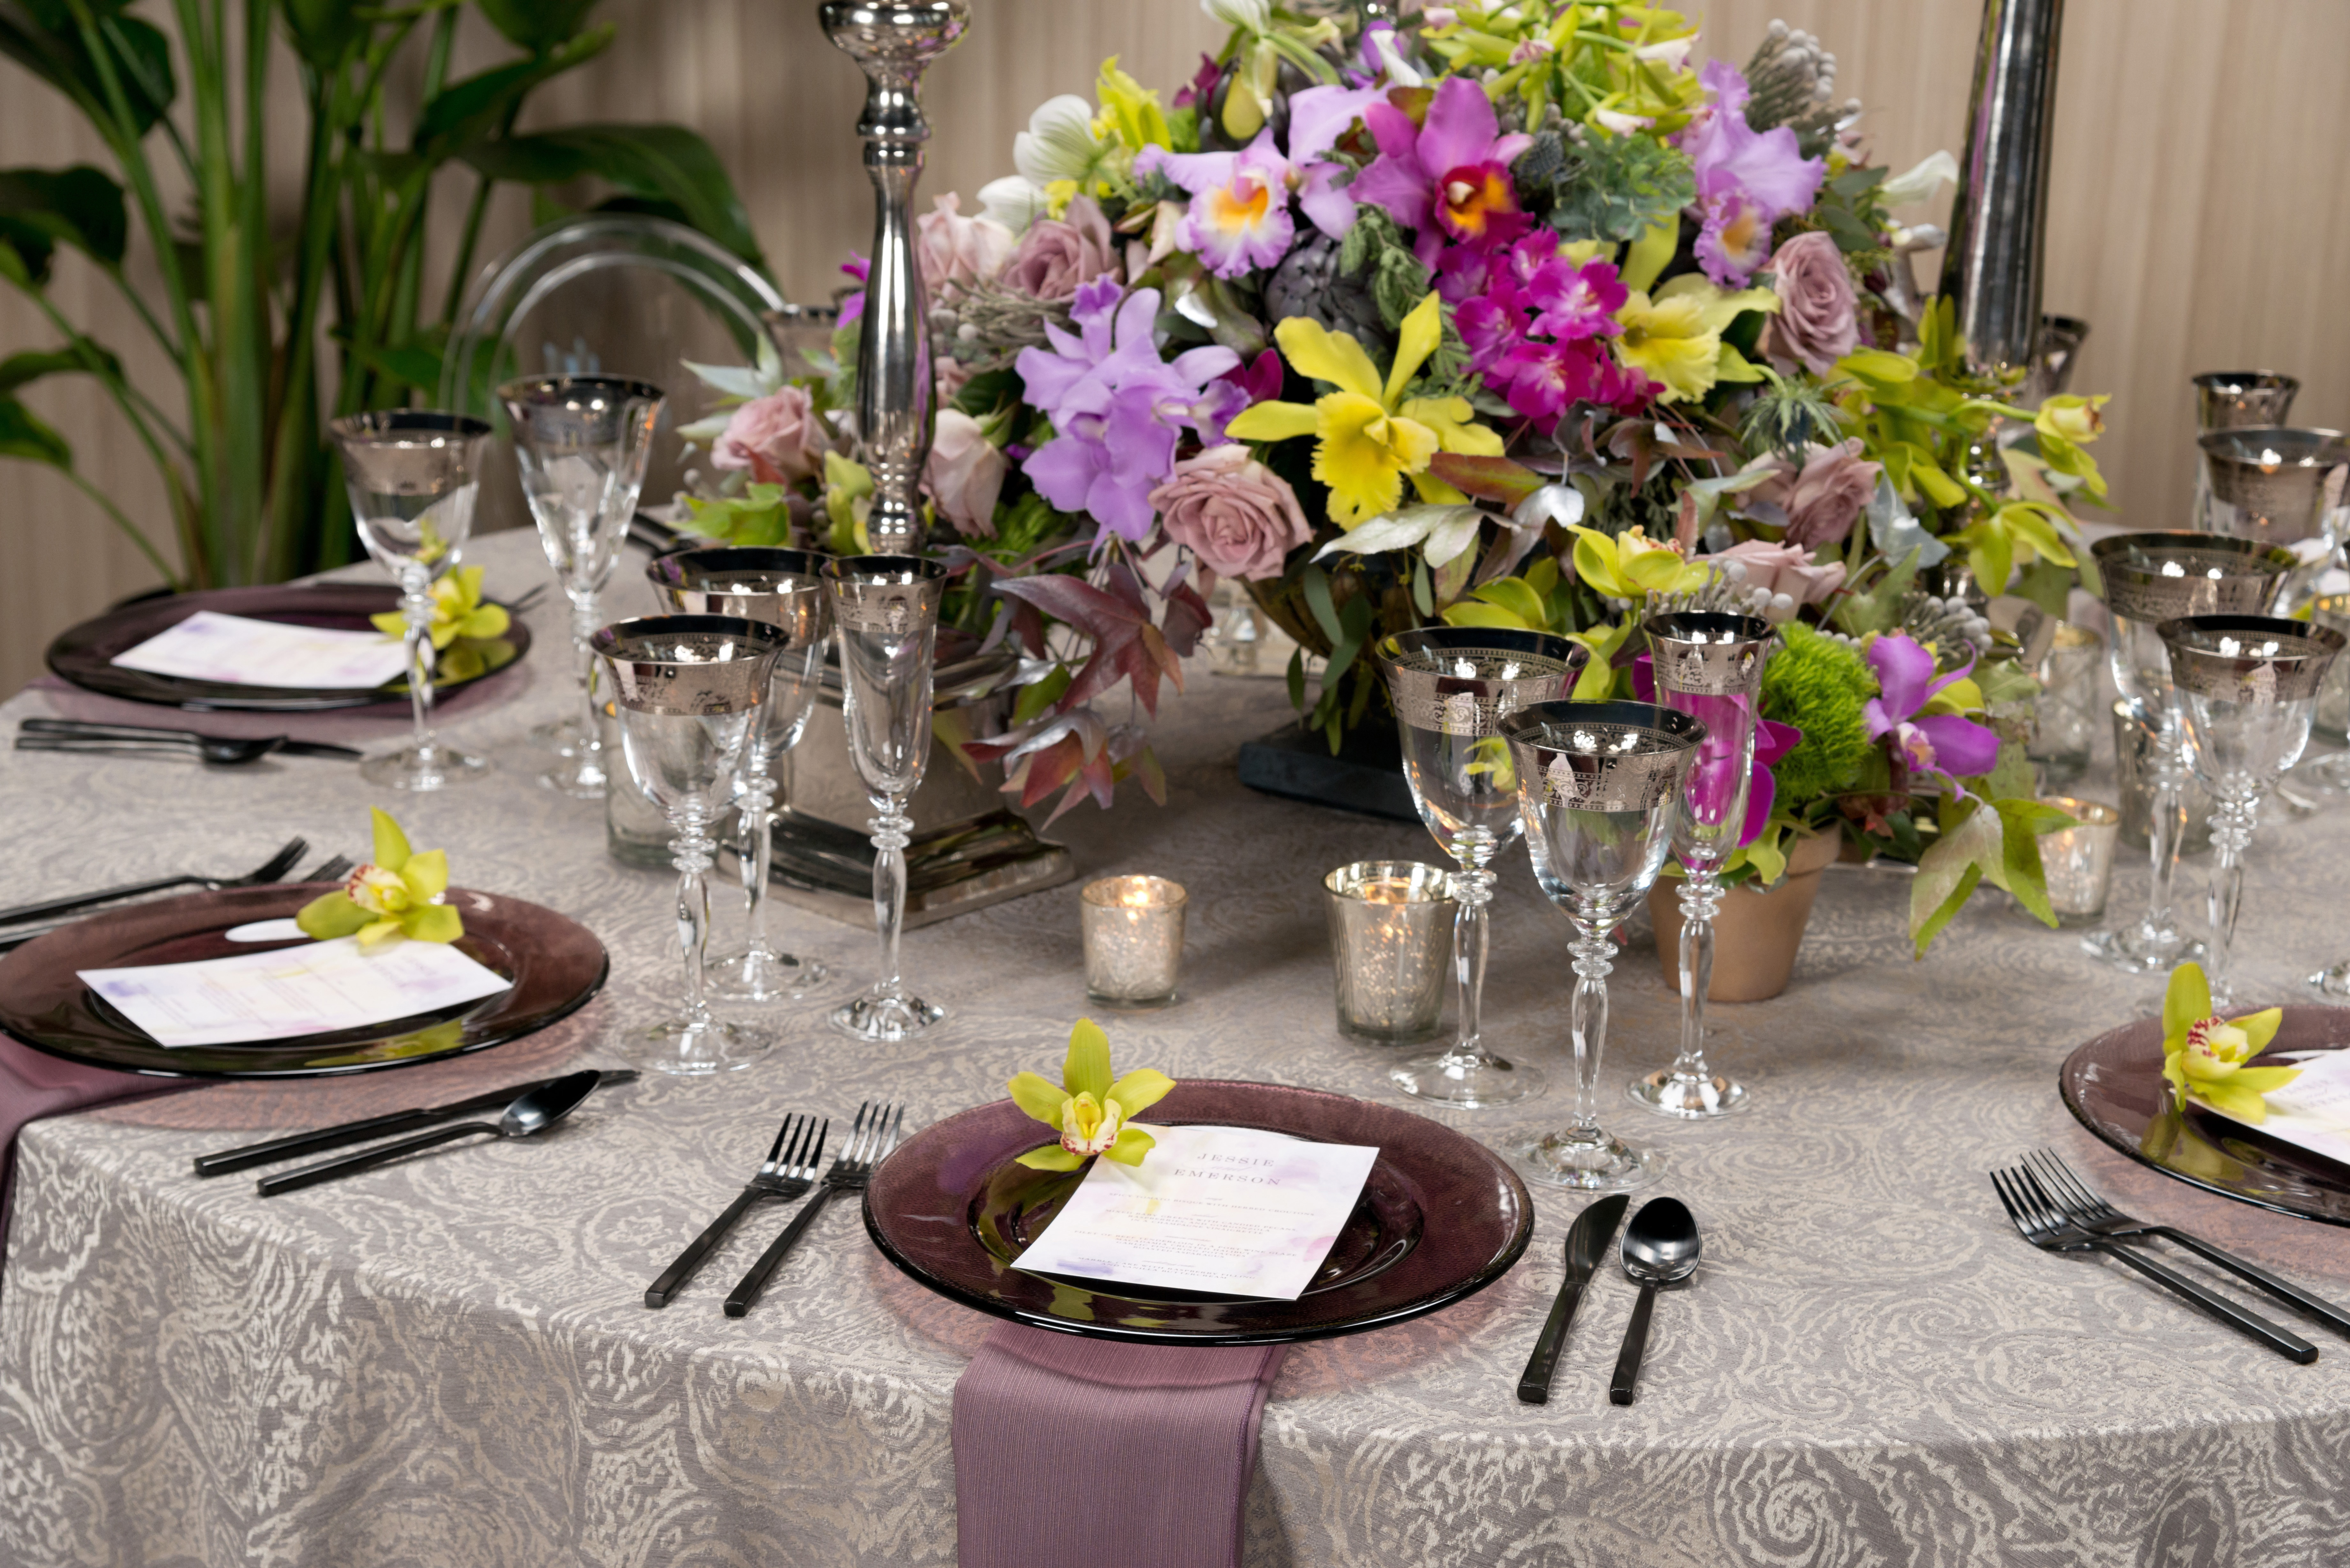 BBJ Linen Everlast Kehoe Collection - Prado Tablescape